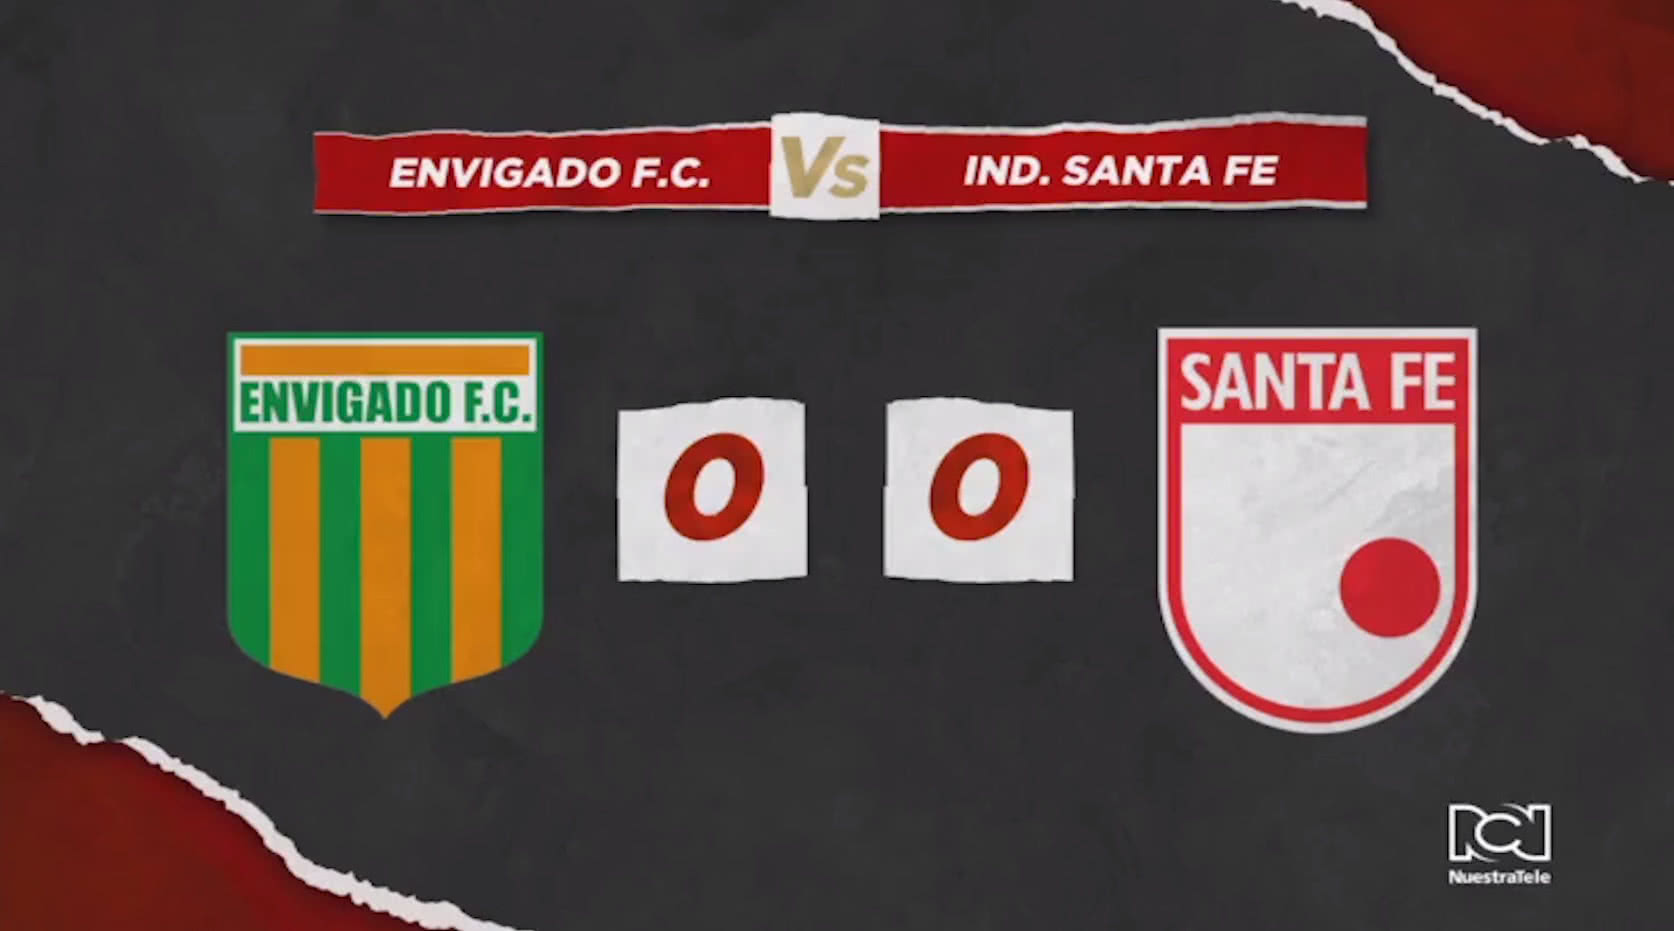 envigado-vs-independiente-santa-fe.jpg